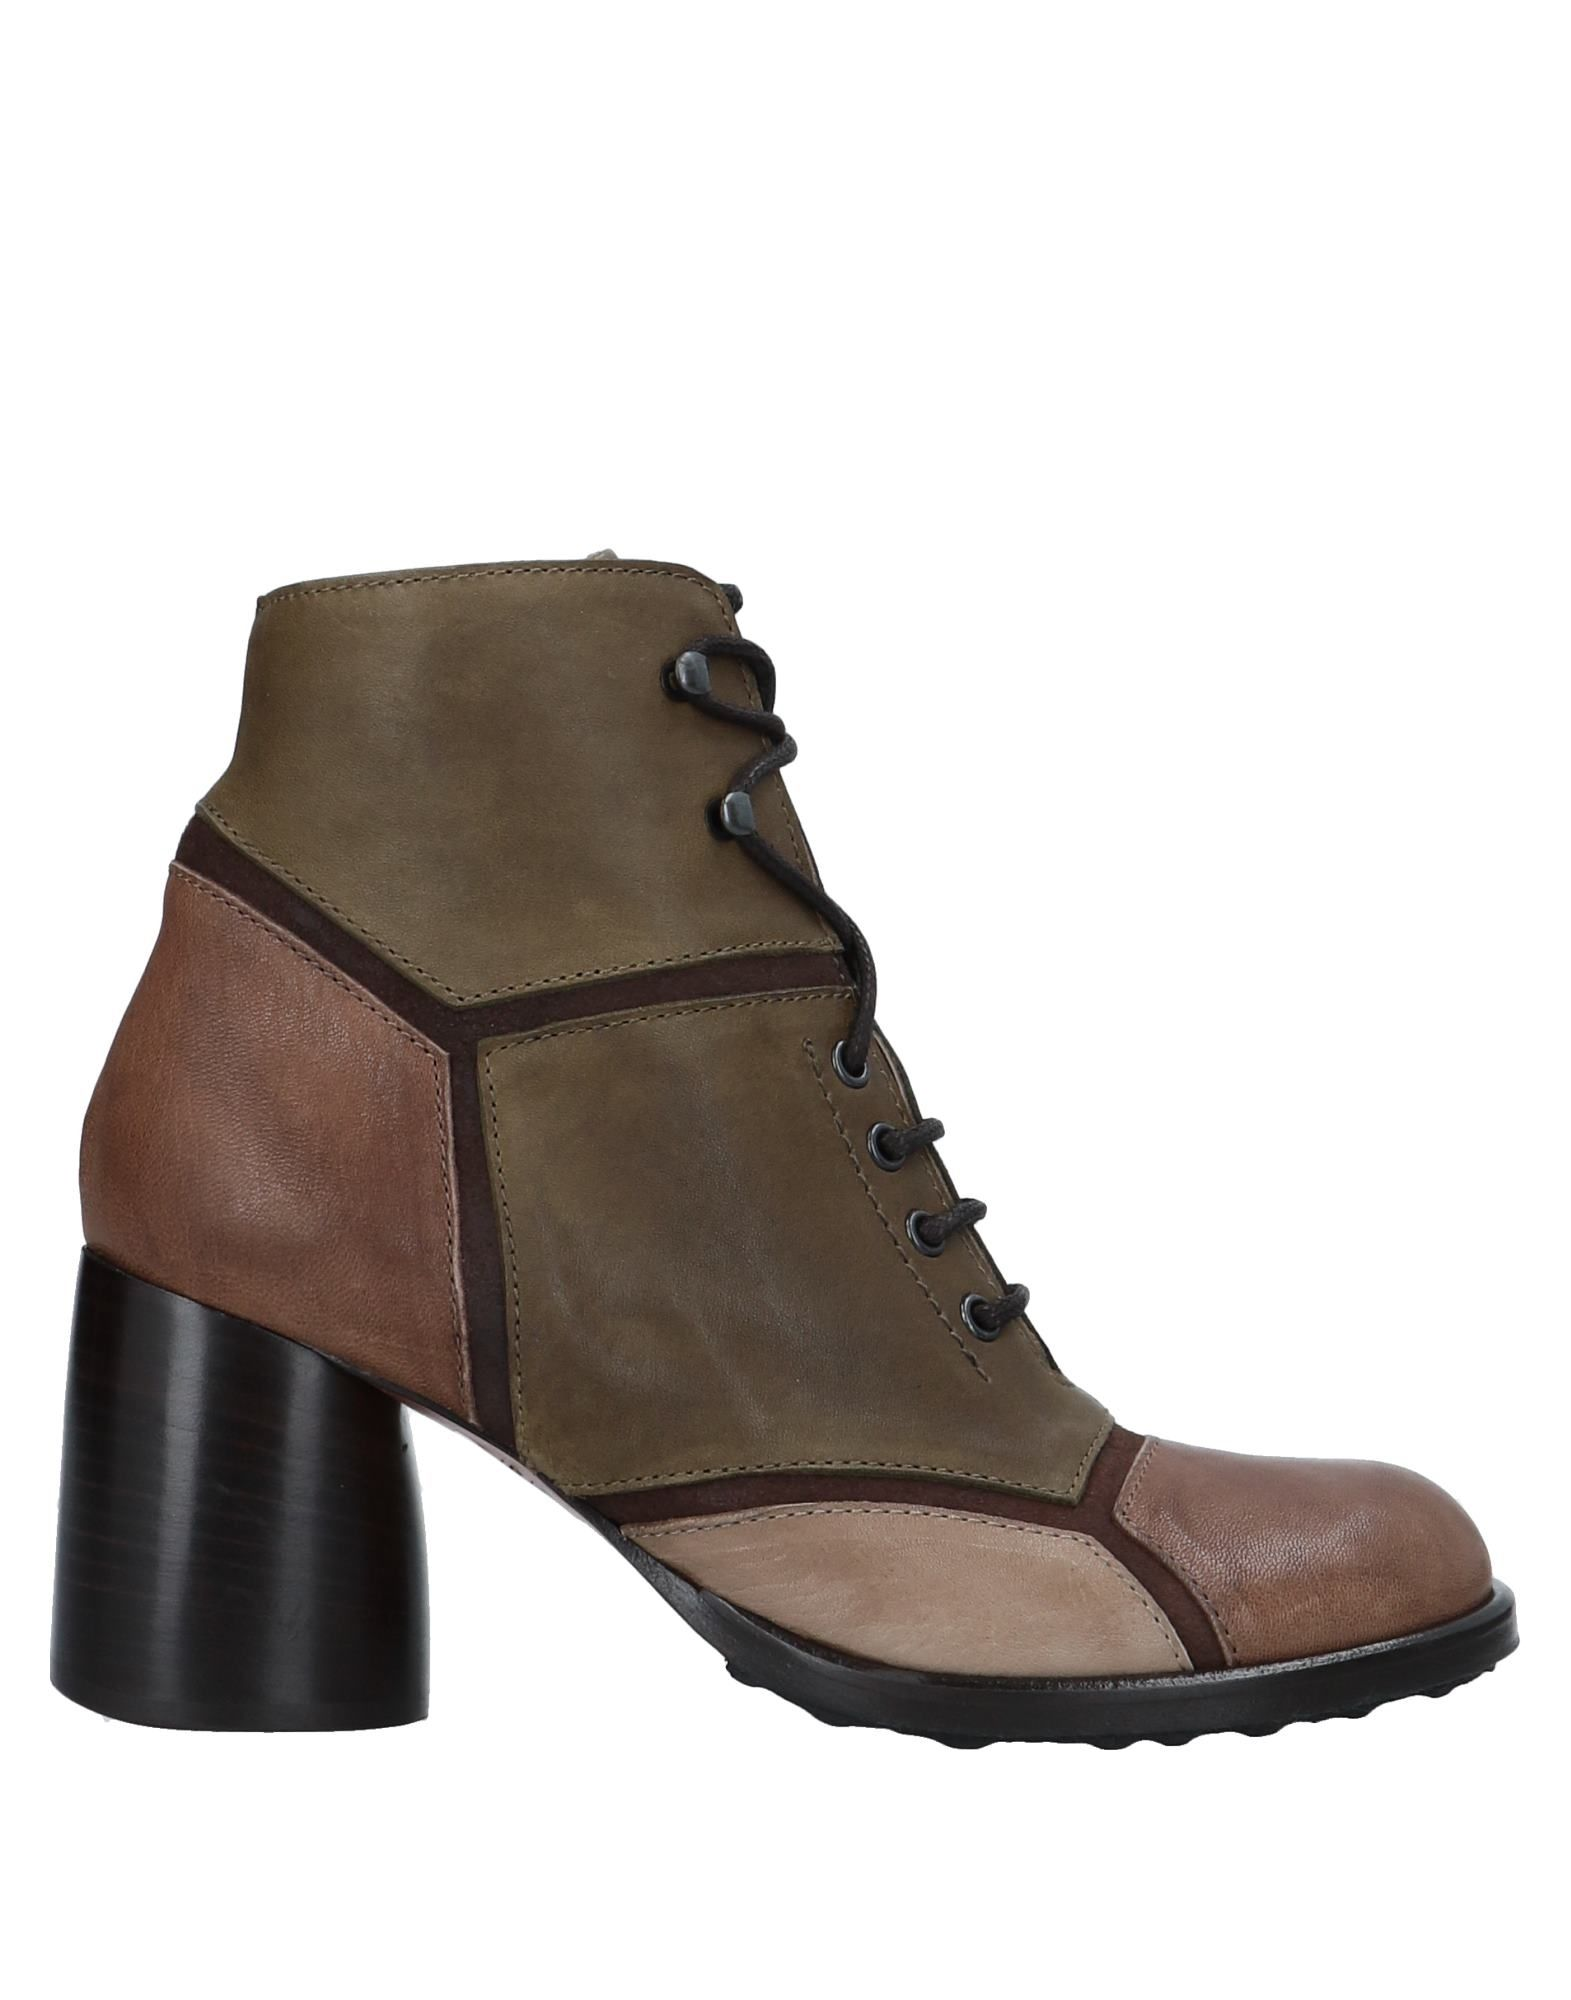 Ixos Ankle Boot - Women Ixos Ankle United Boots online on  United Ankle Kingdom - 11544713XR 1306b0